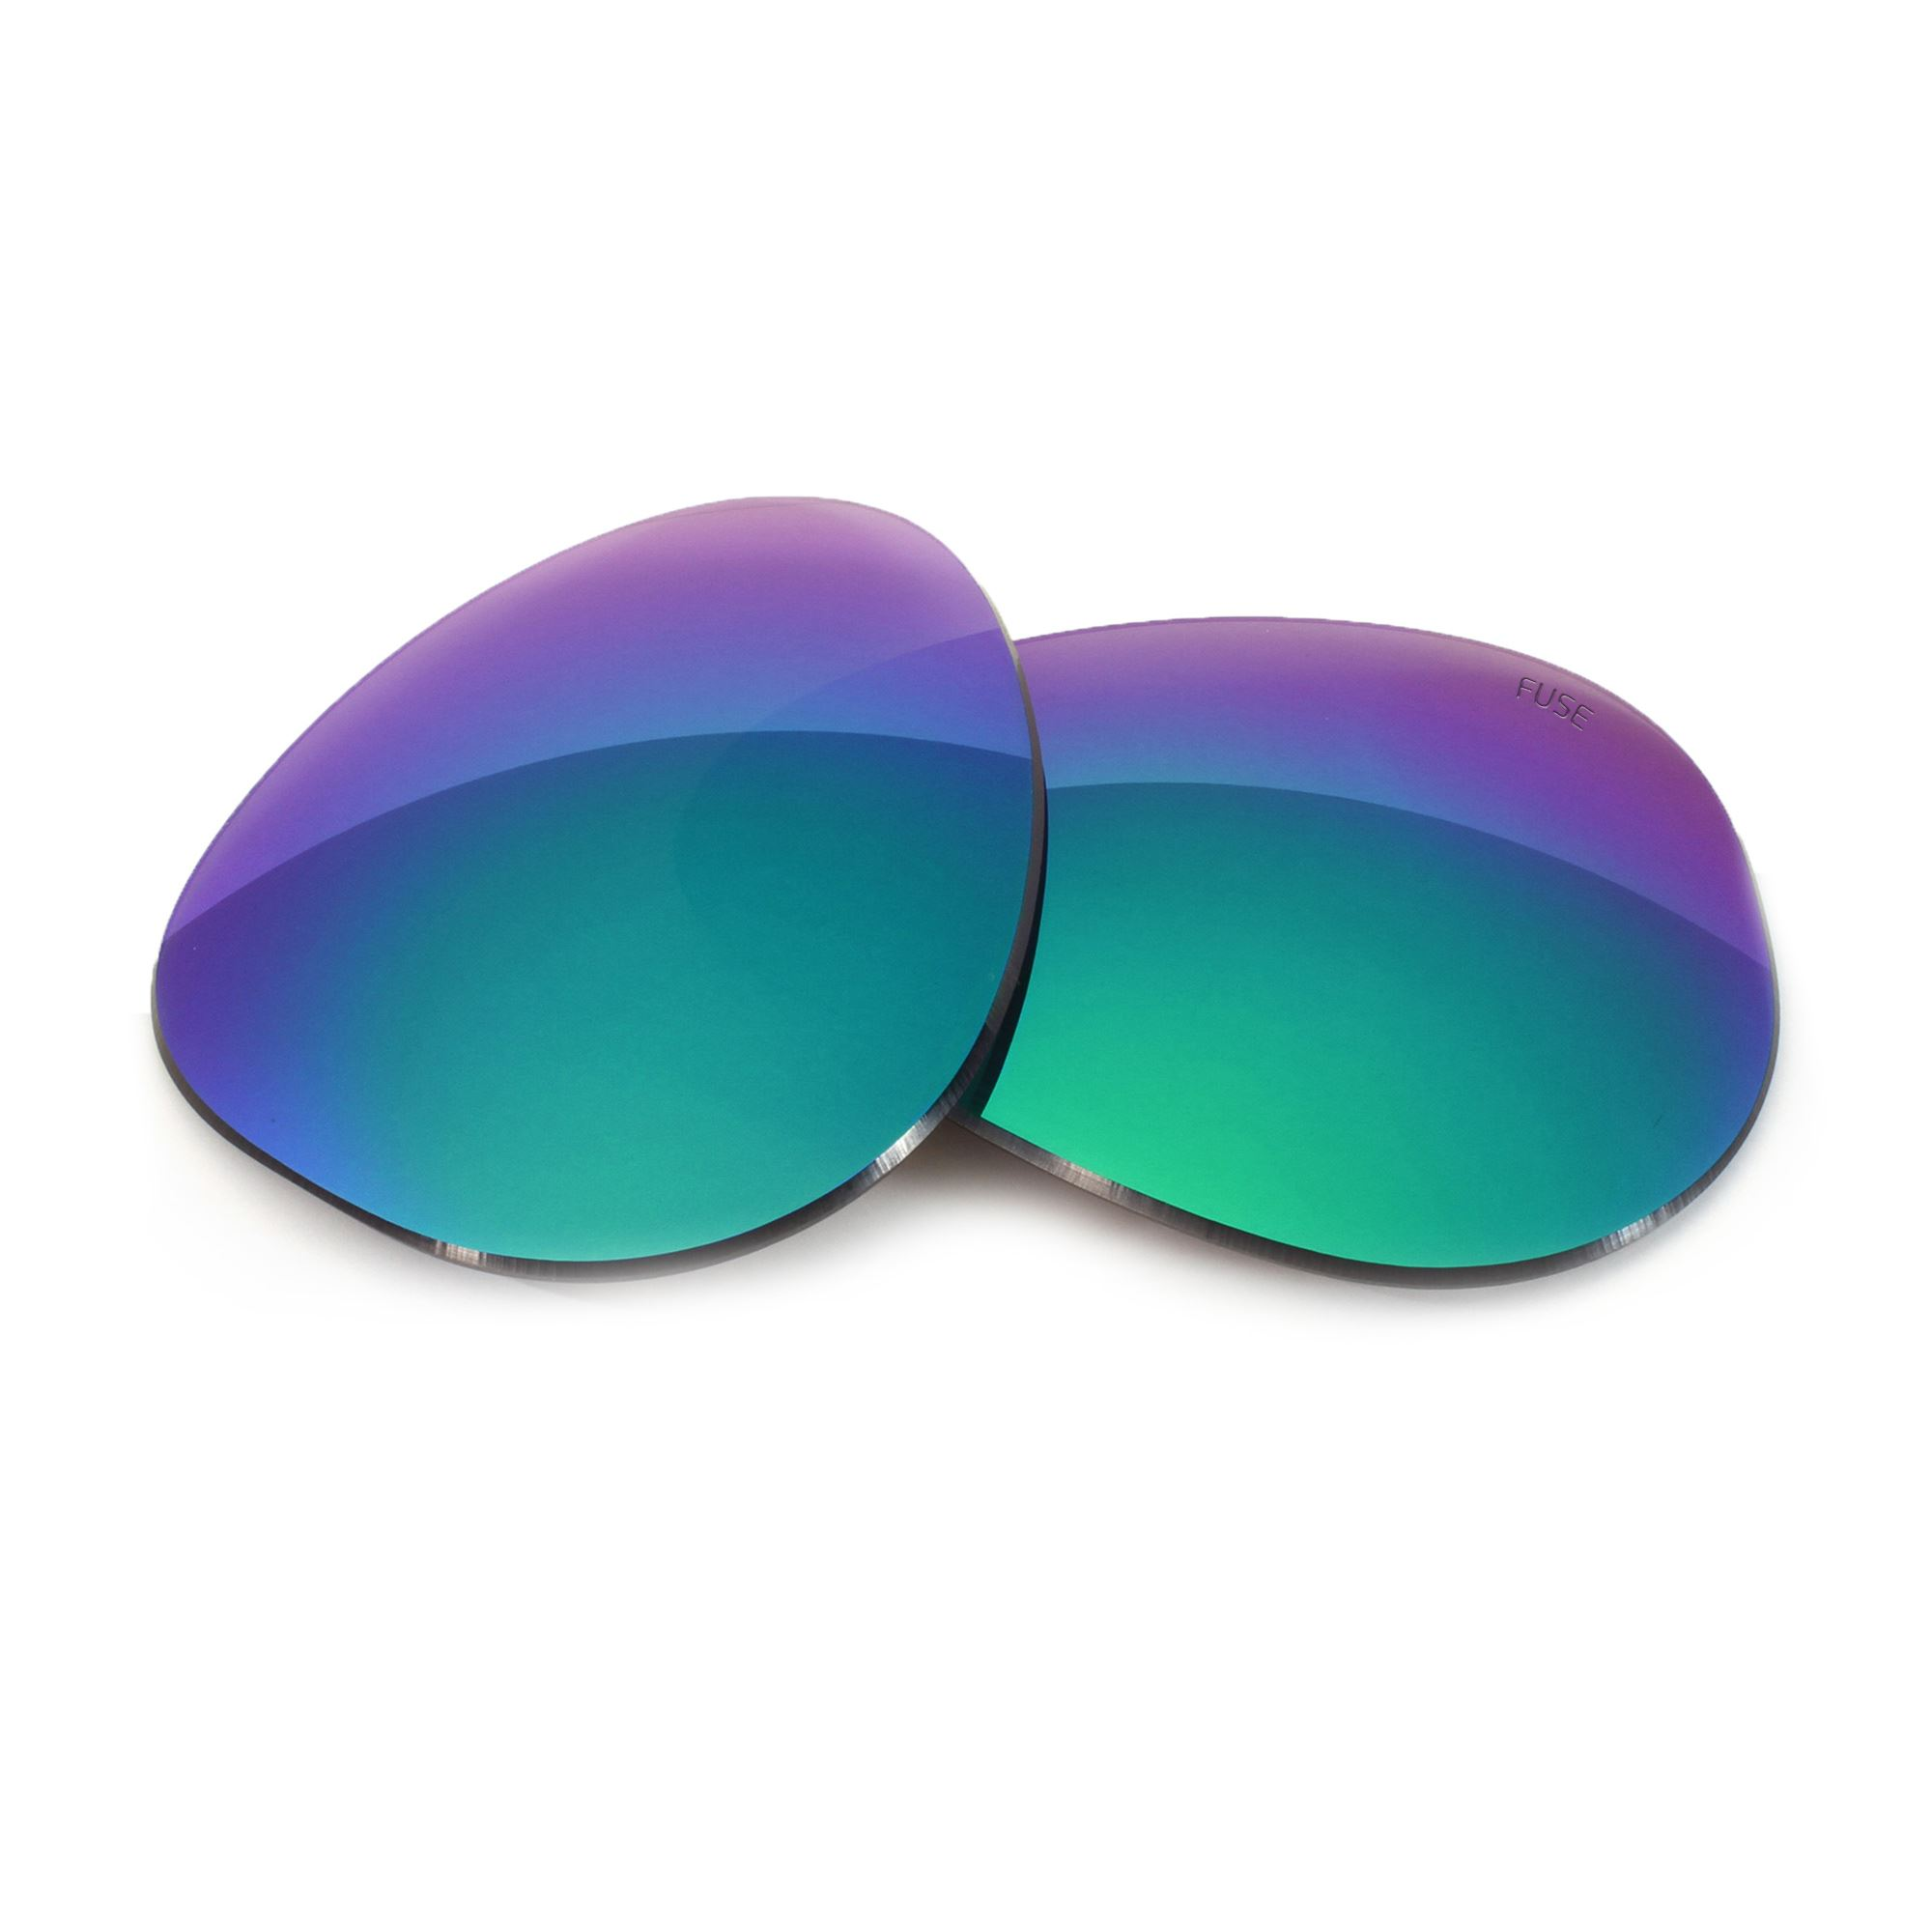 82800bdff7 Fuse Lenses Replacement Lenses for Ray-Ban RB3025 Aviator Large ...